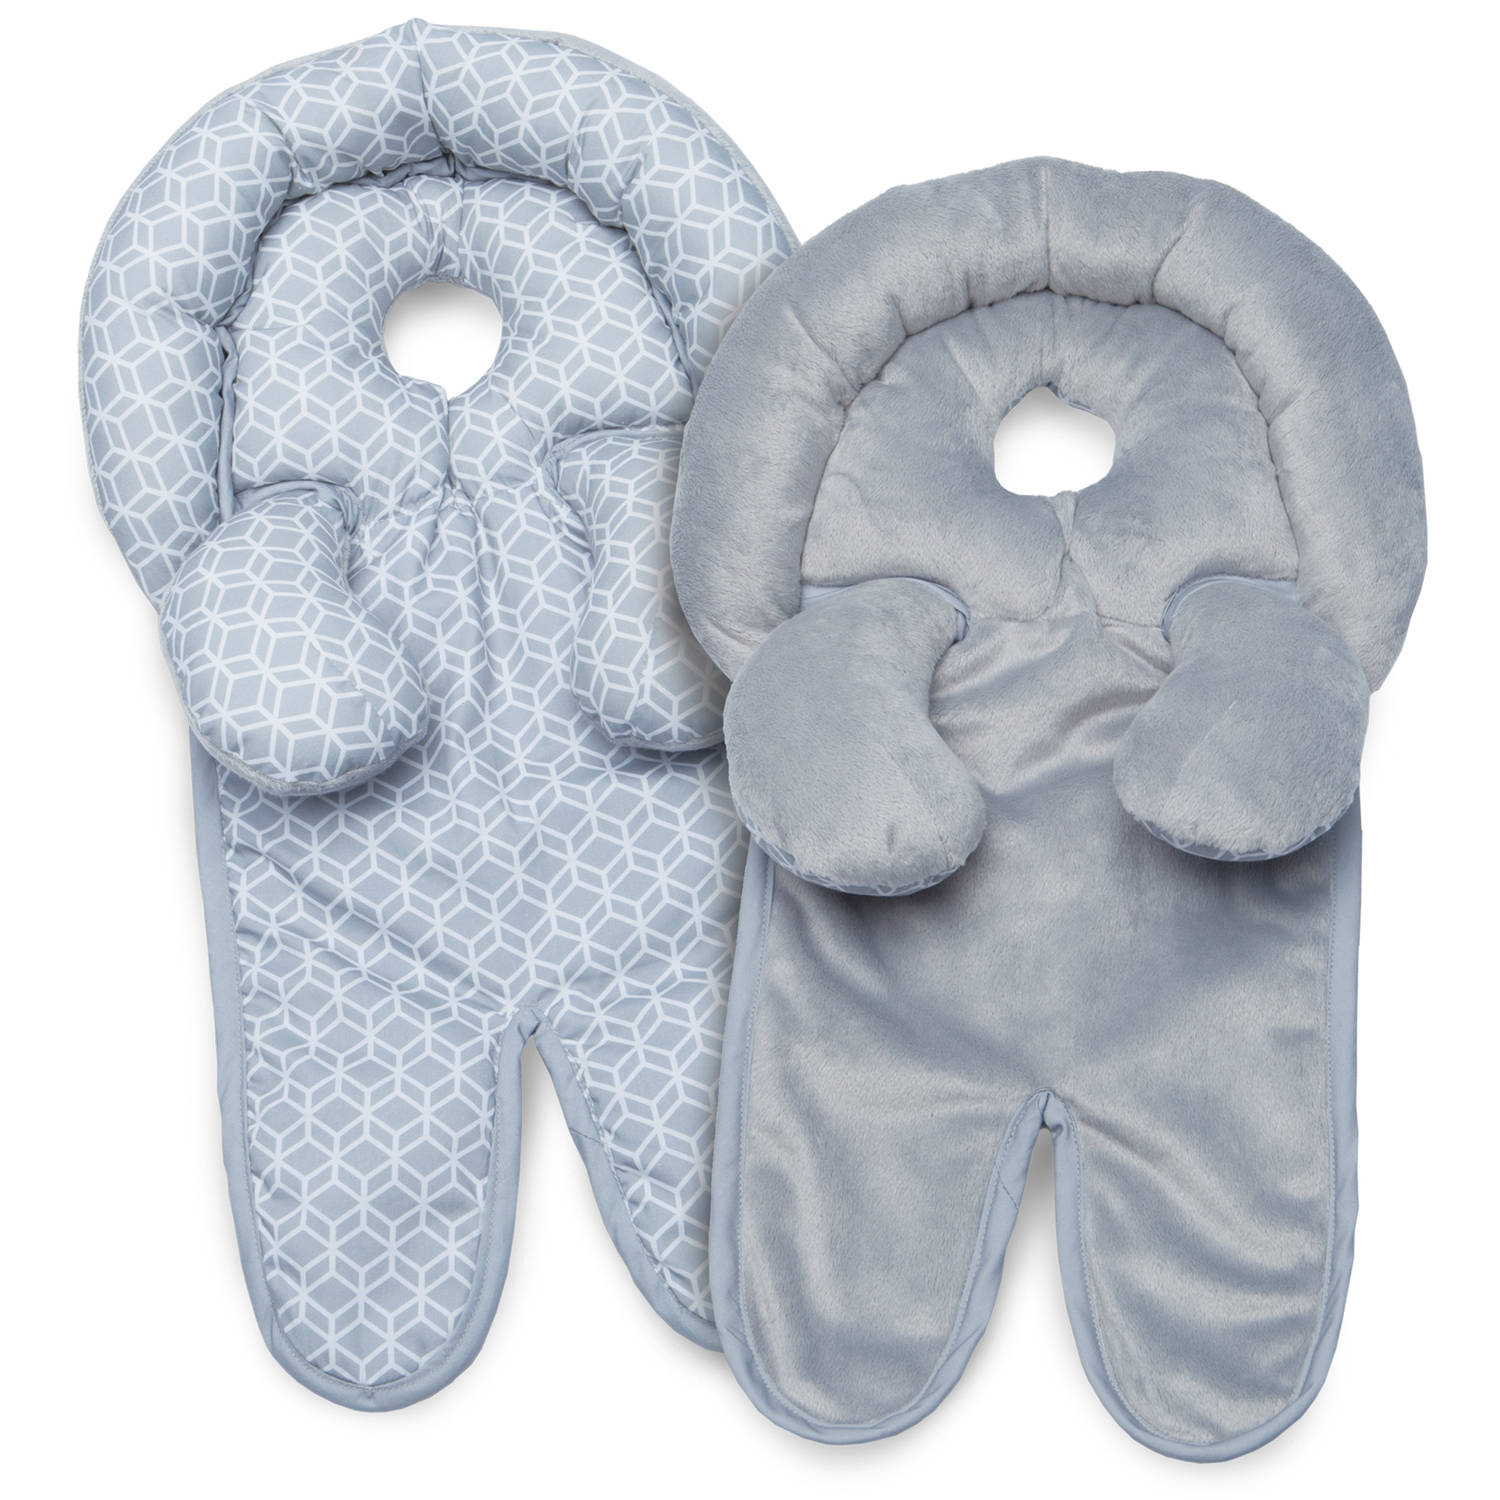 Boppy Infant and Toddler Head Support, Prism Gray